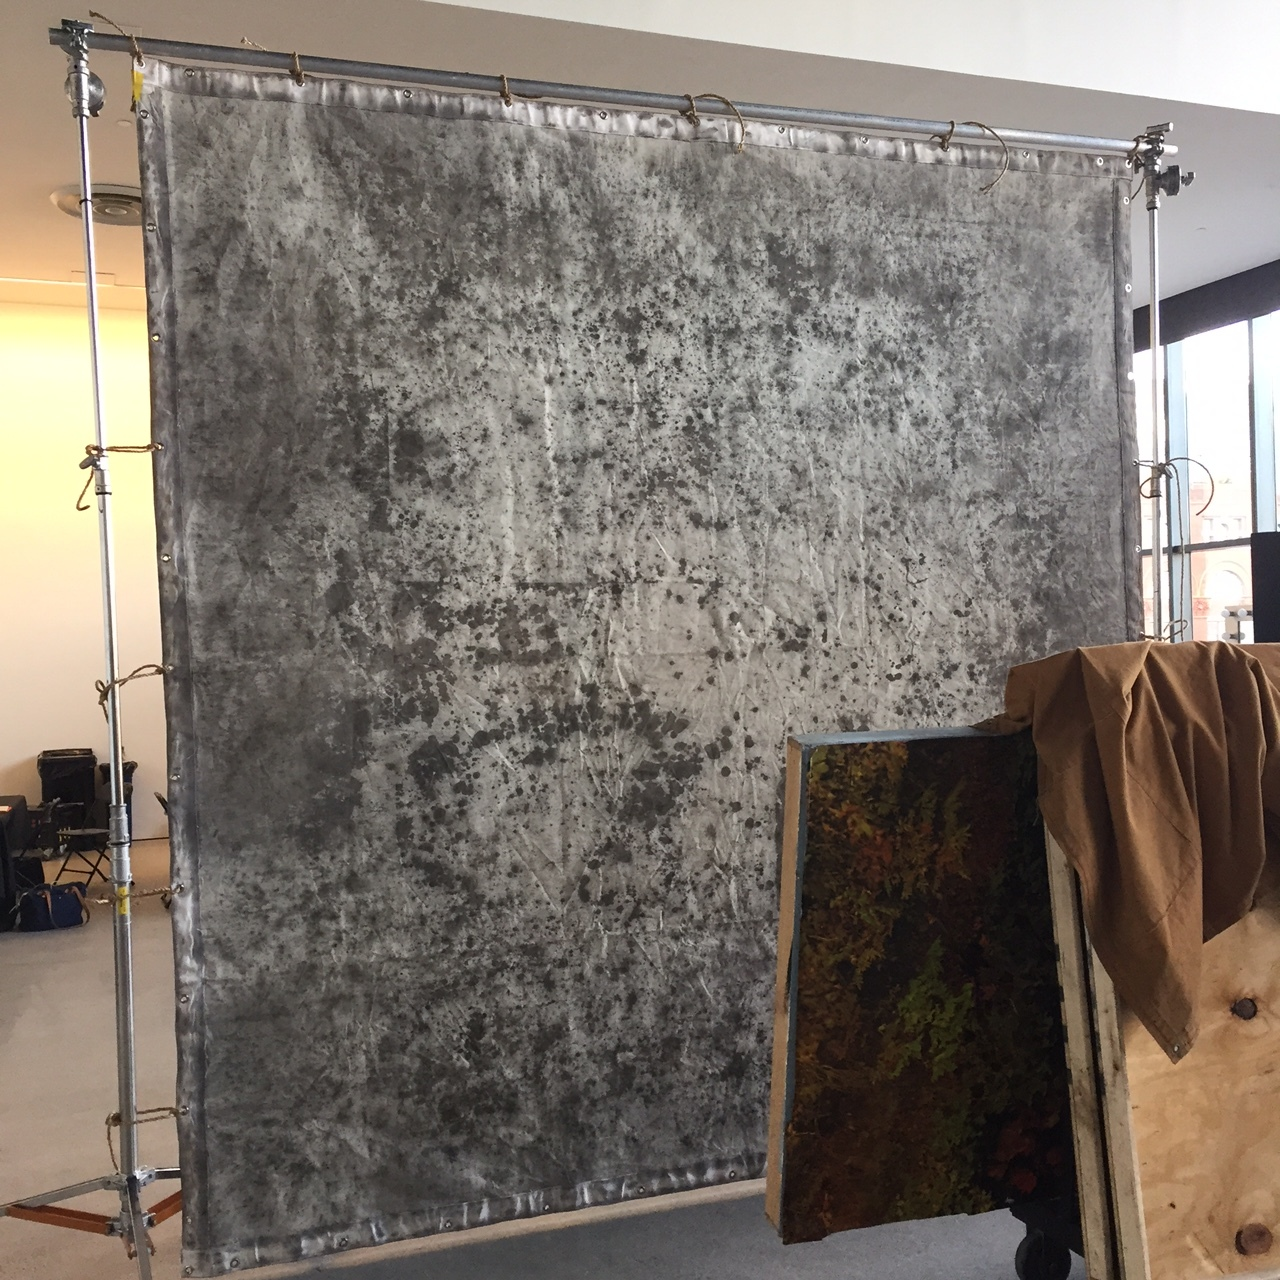 10.5' x 11' Grommetted backdrop - side 1 $300